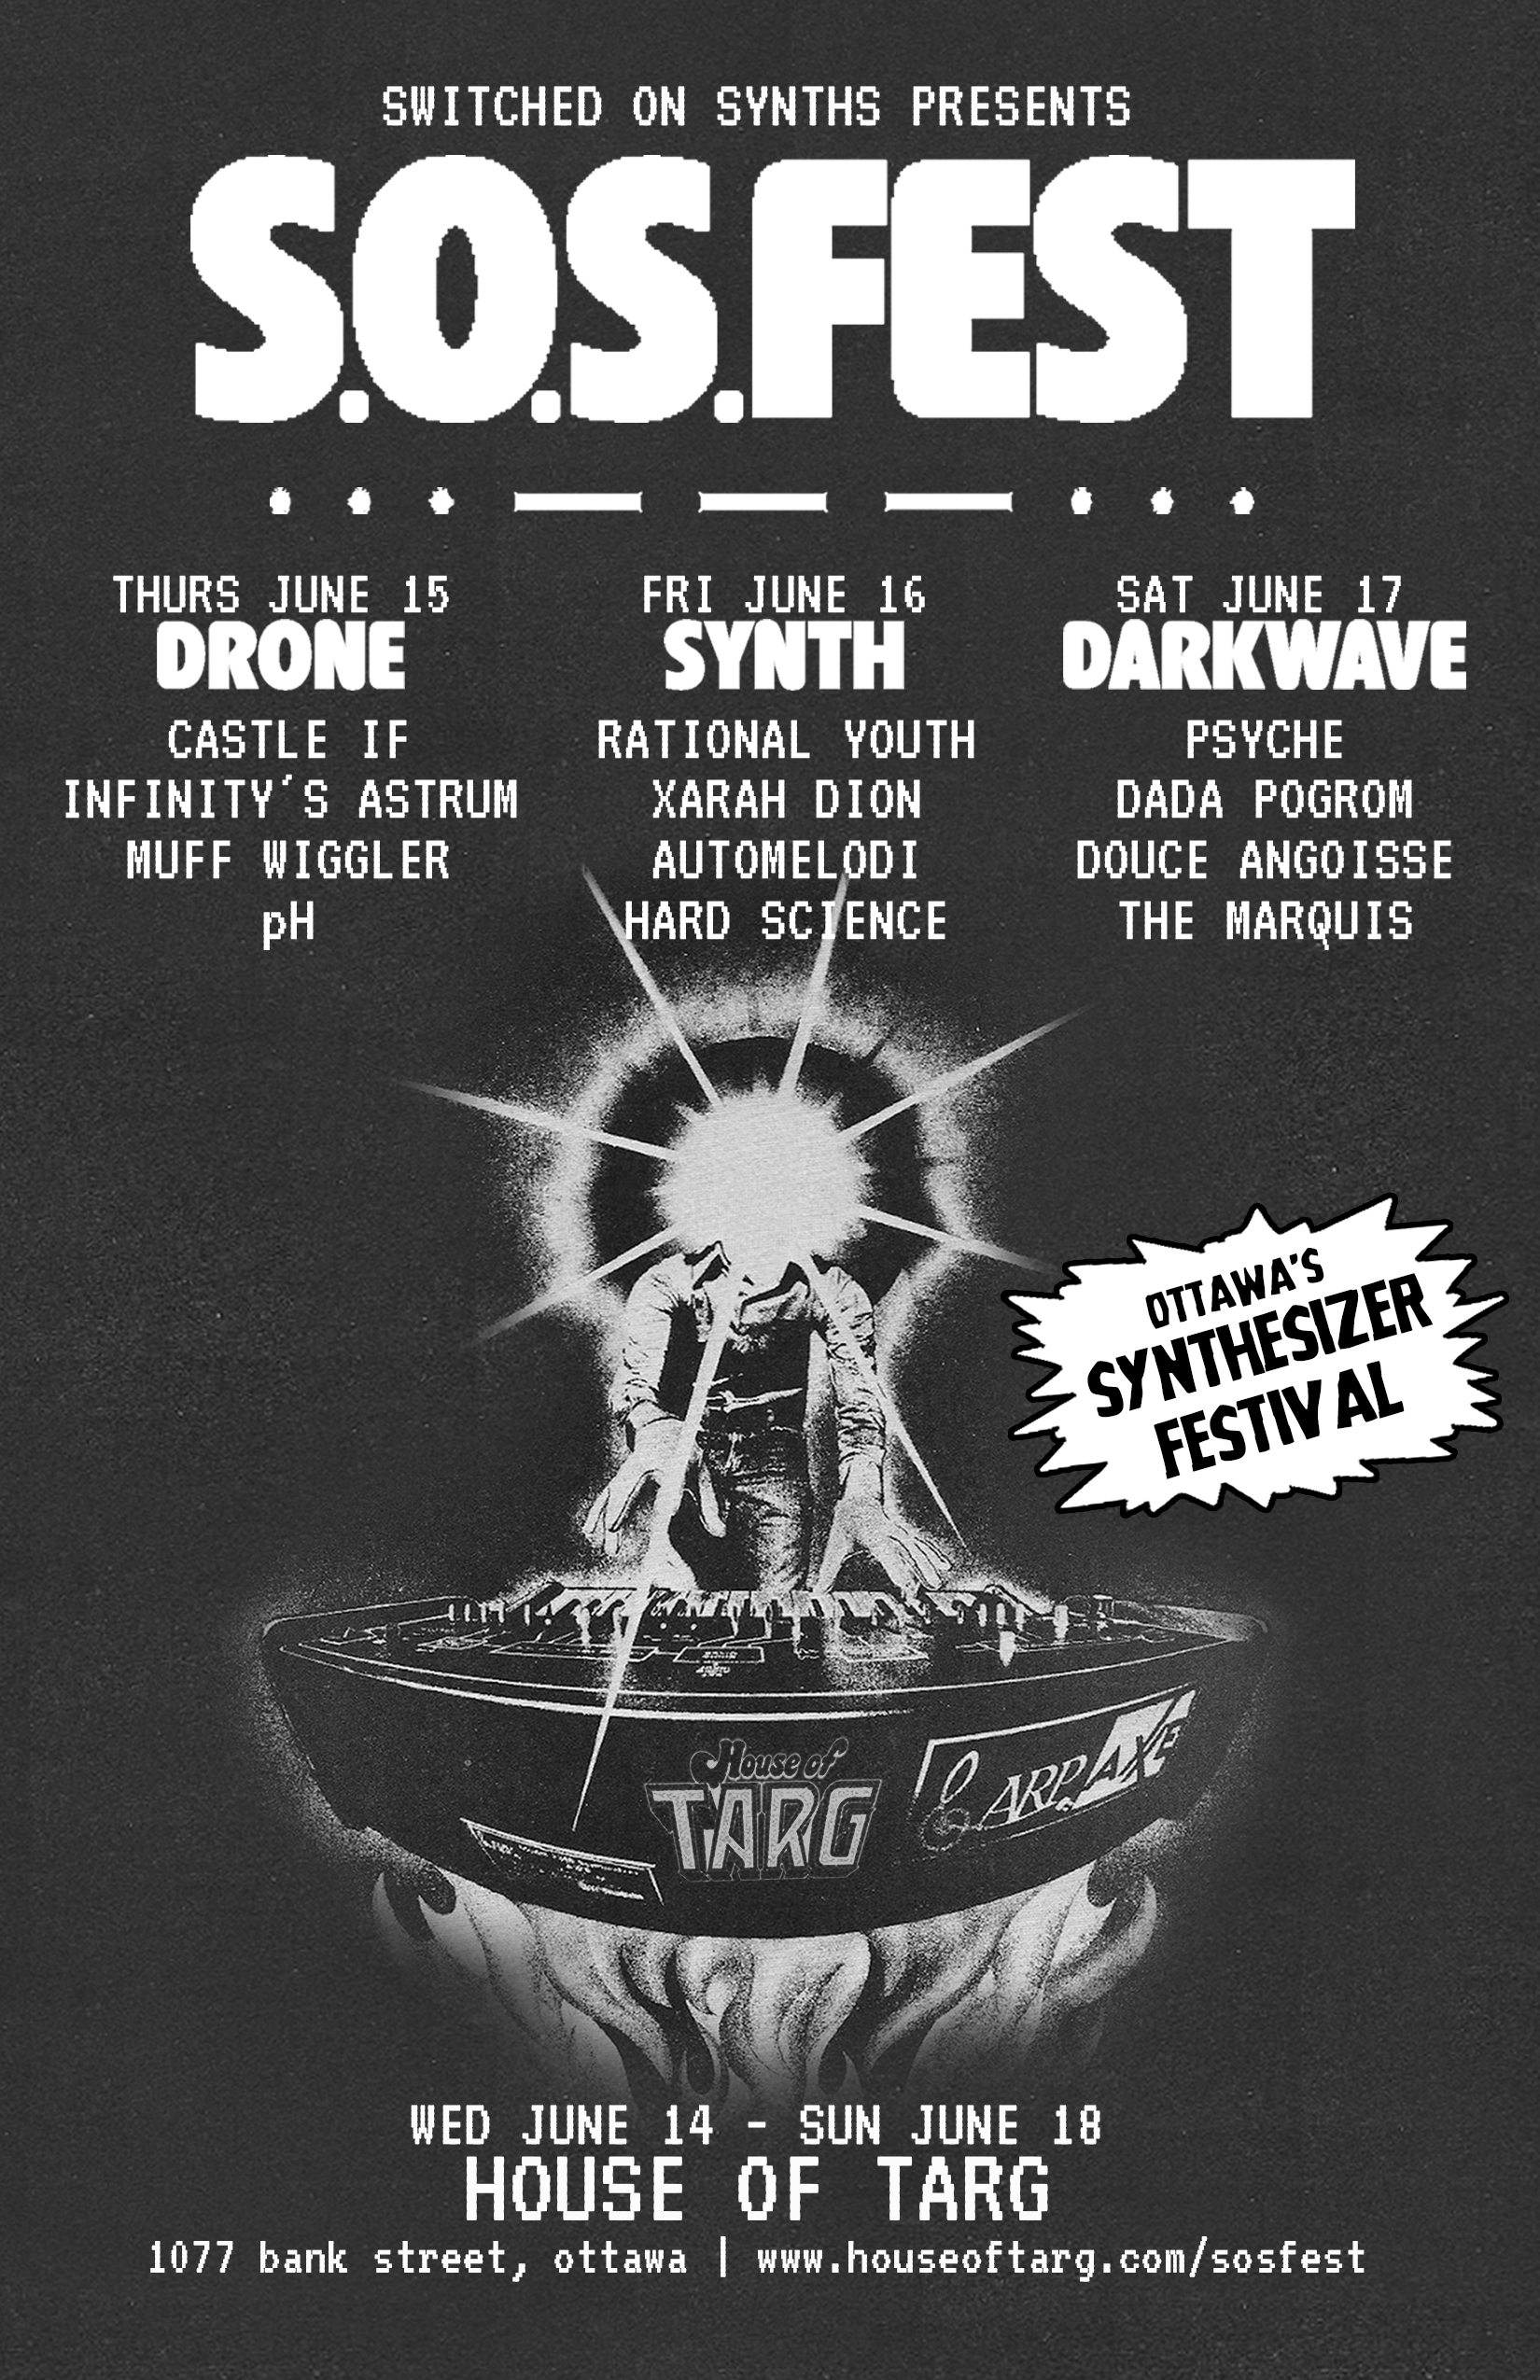 THE OFFICIAL S.O.S.fest ZINE: Everything you need to know about the Switch On Synths festival happening June 14-18 at TARG   download the PDF here.